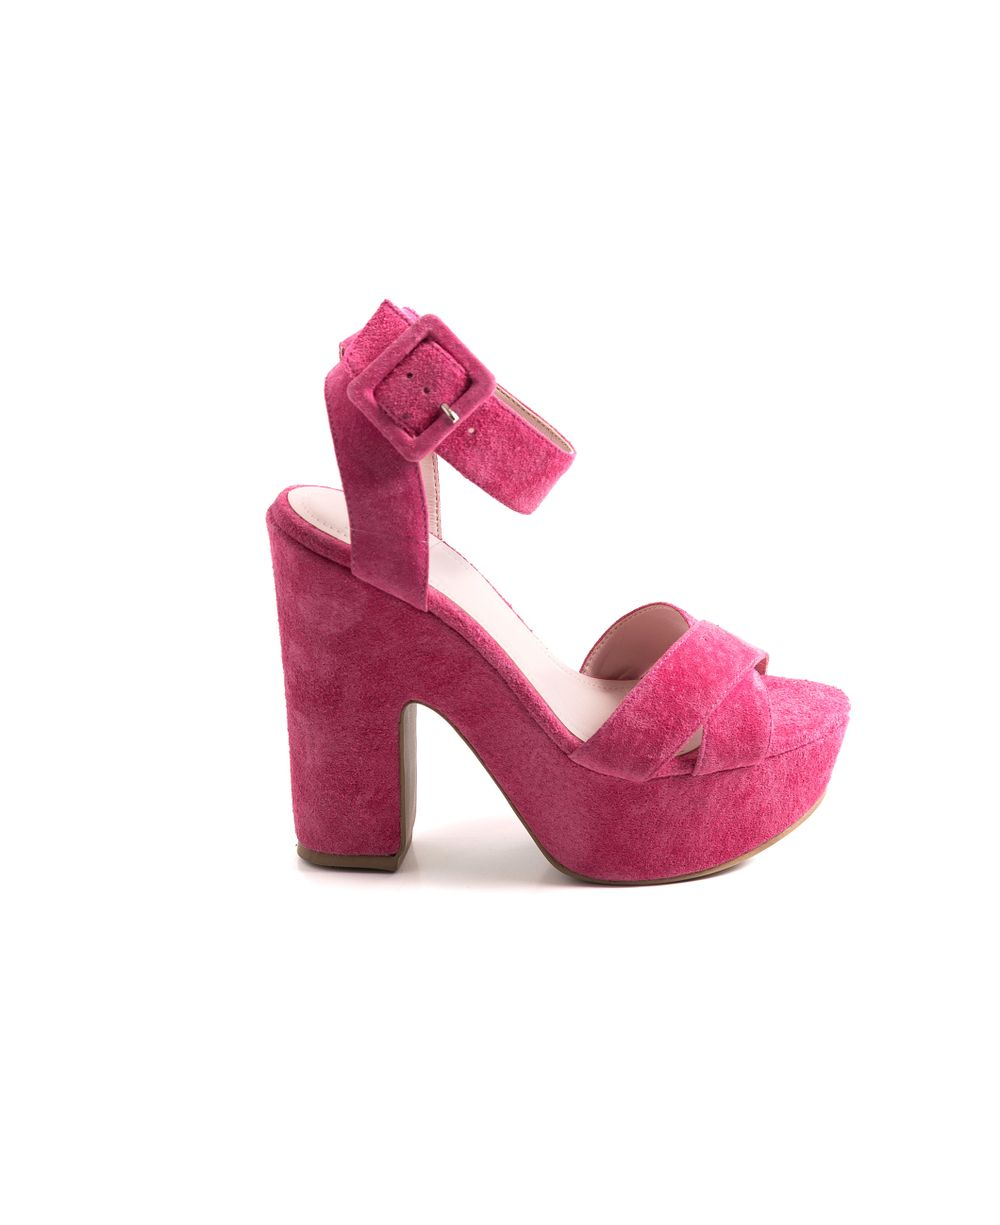 MY-SHOES-SANDALIA-PLAT-ROSA-70370201